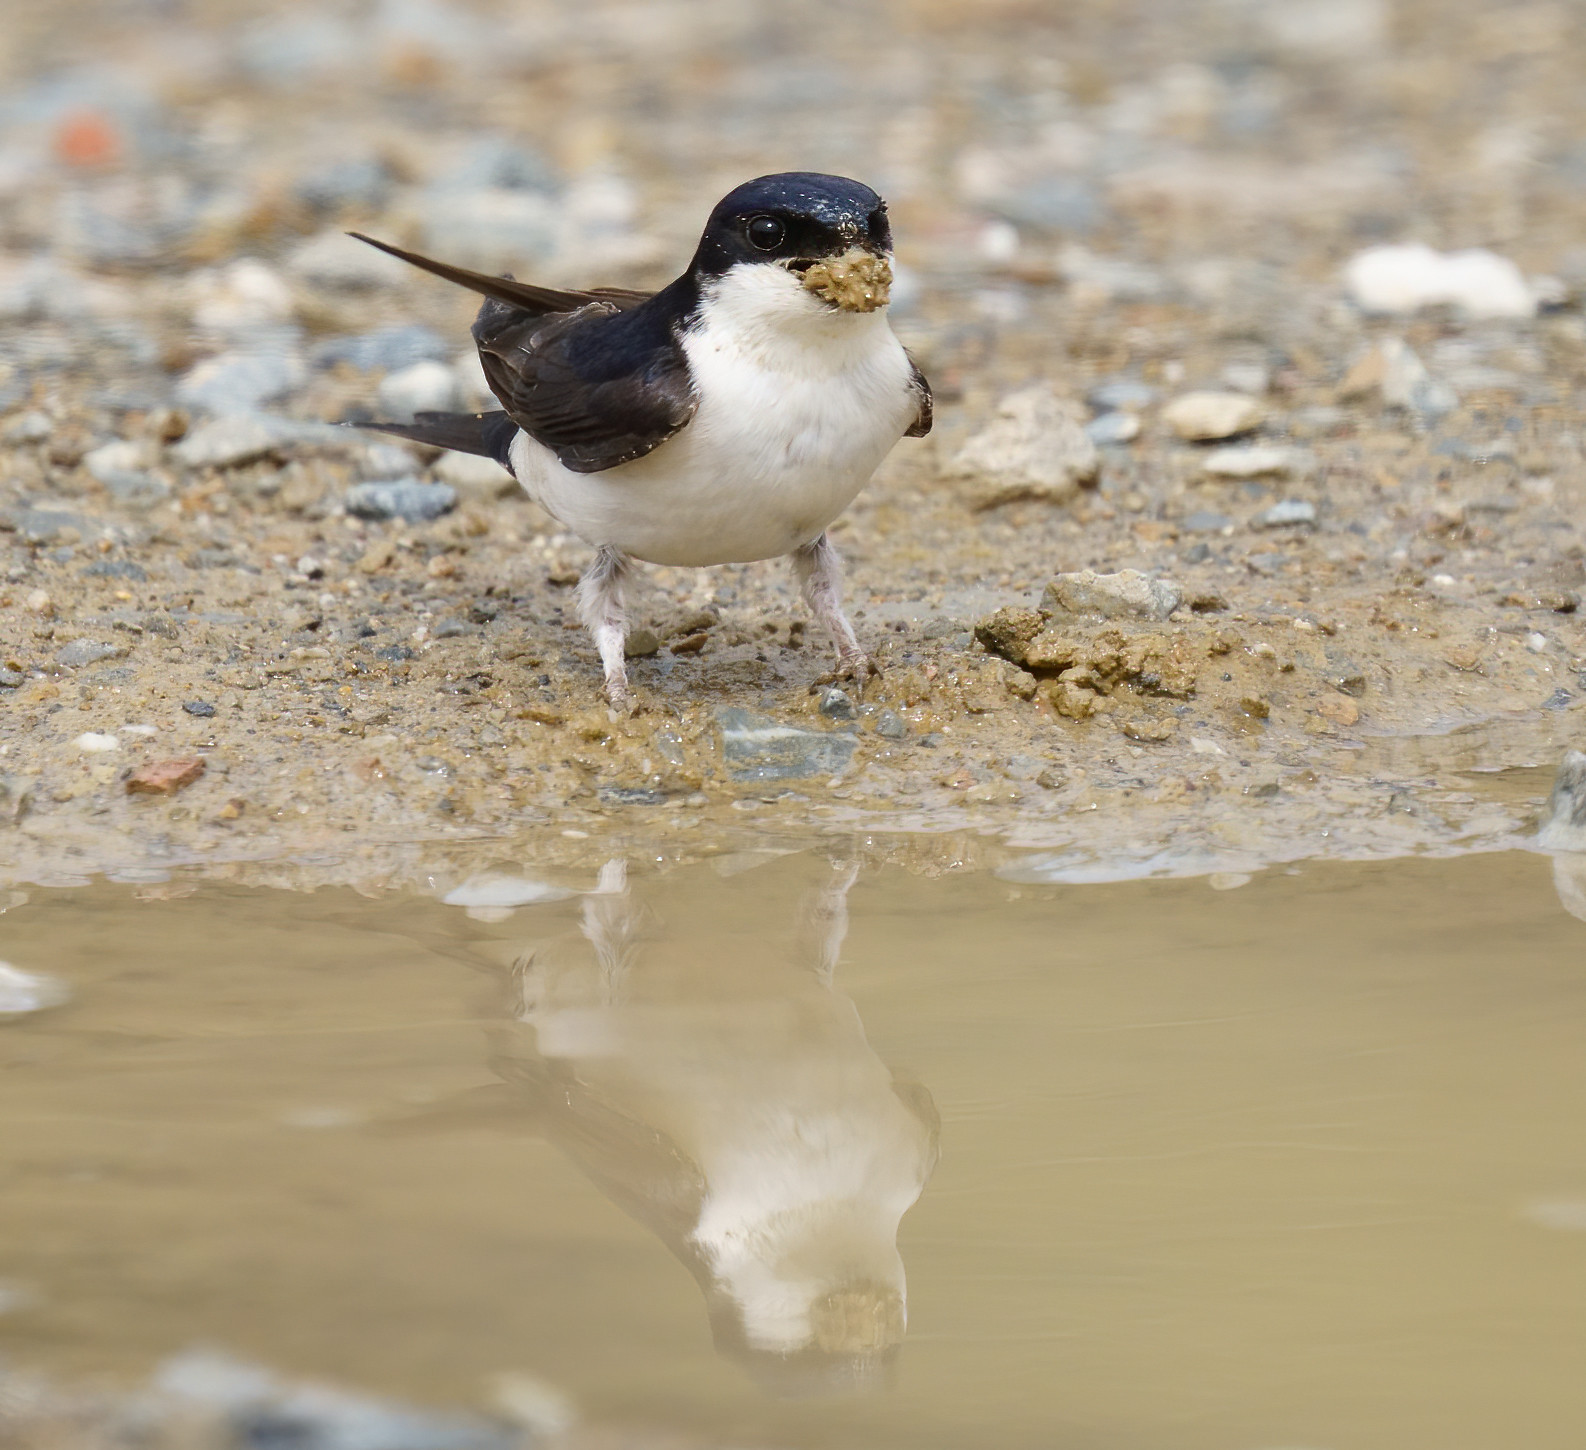 House Martins gathering mud to nest-build - Mertola